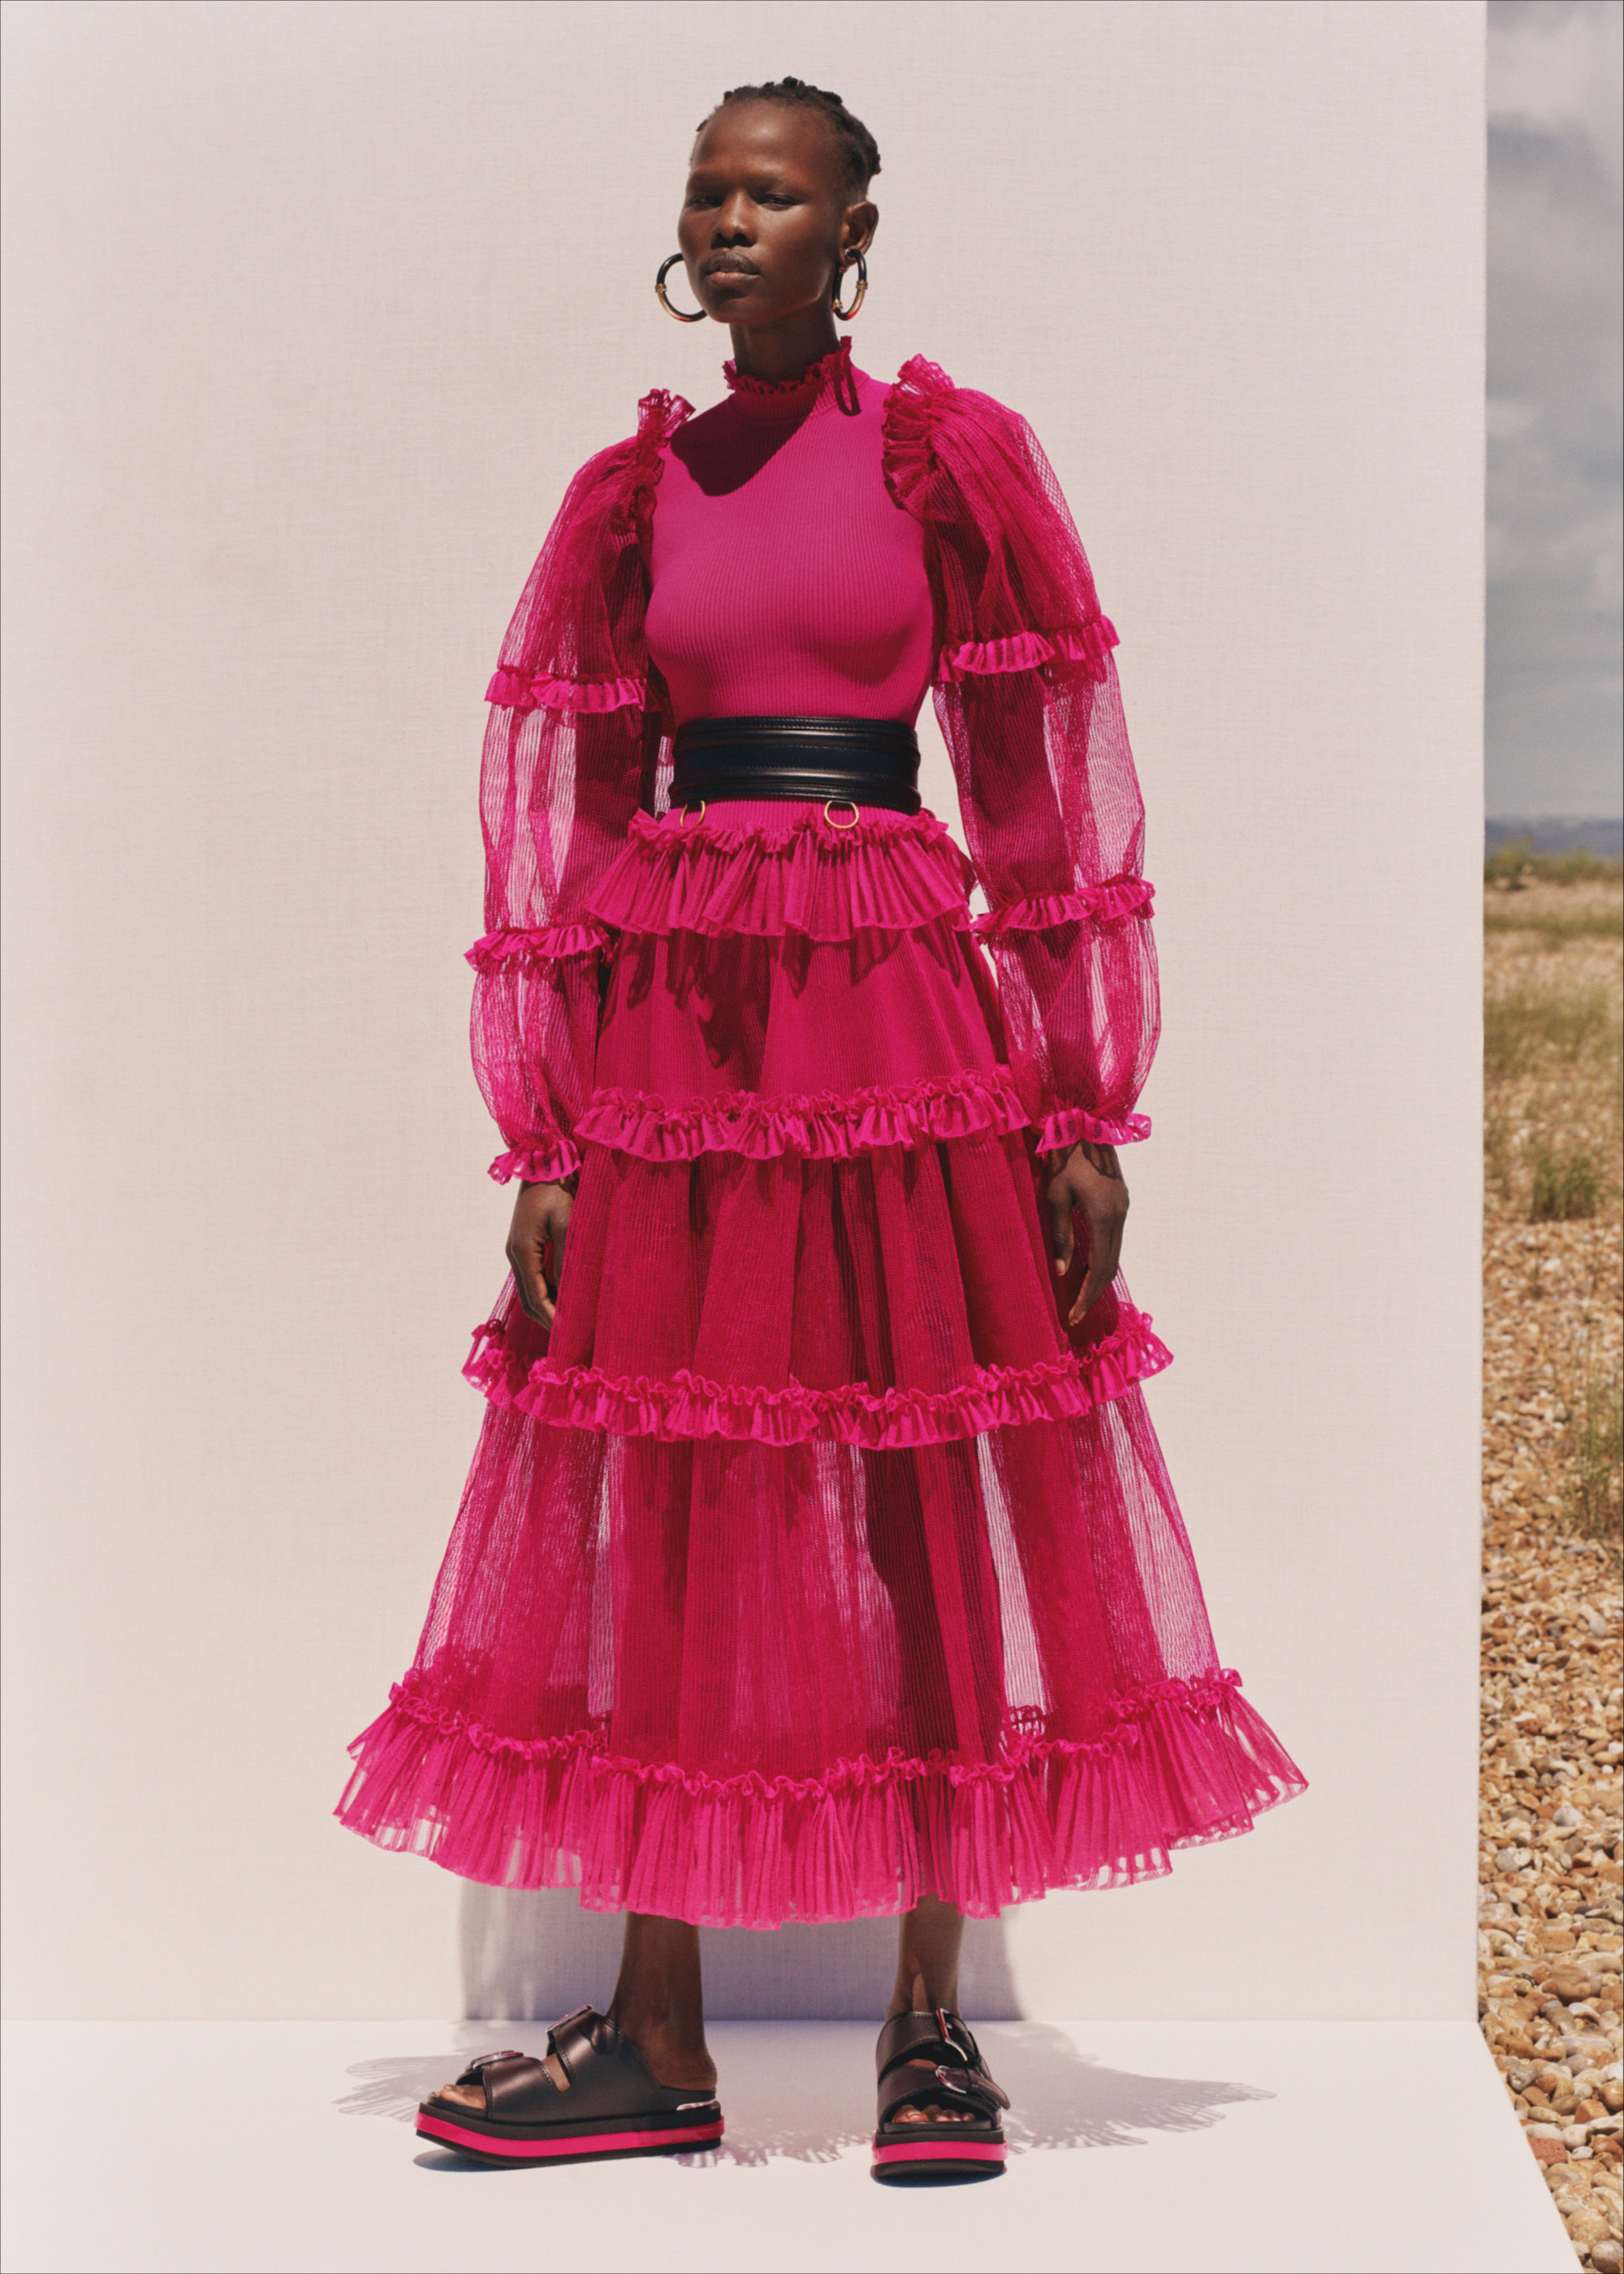 Alexander McQueen SS20 pink dress